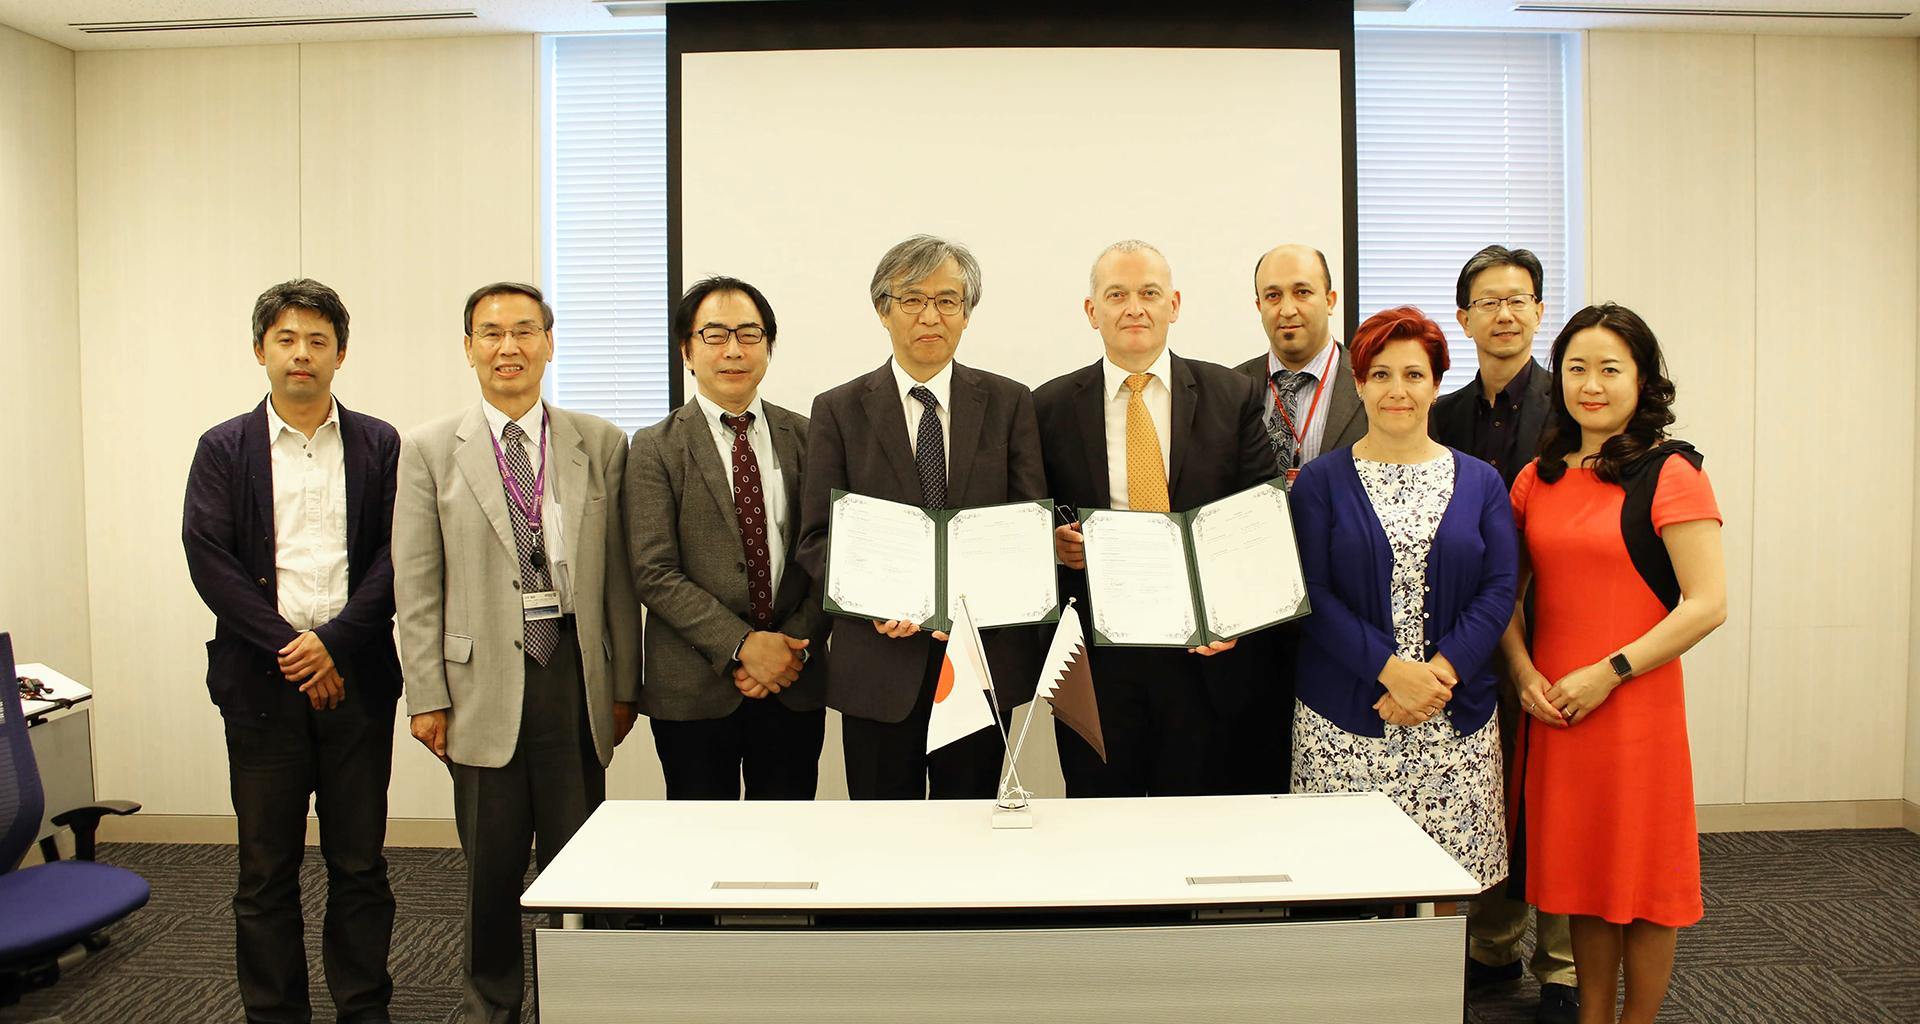 HBKU's QEERI Signs MoU with Japan's International Center for Materials Nanoarchitectonics